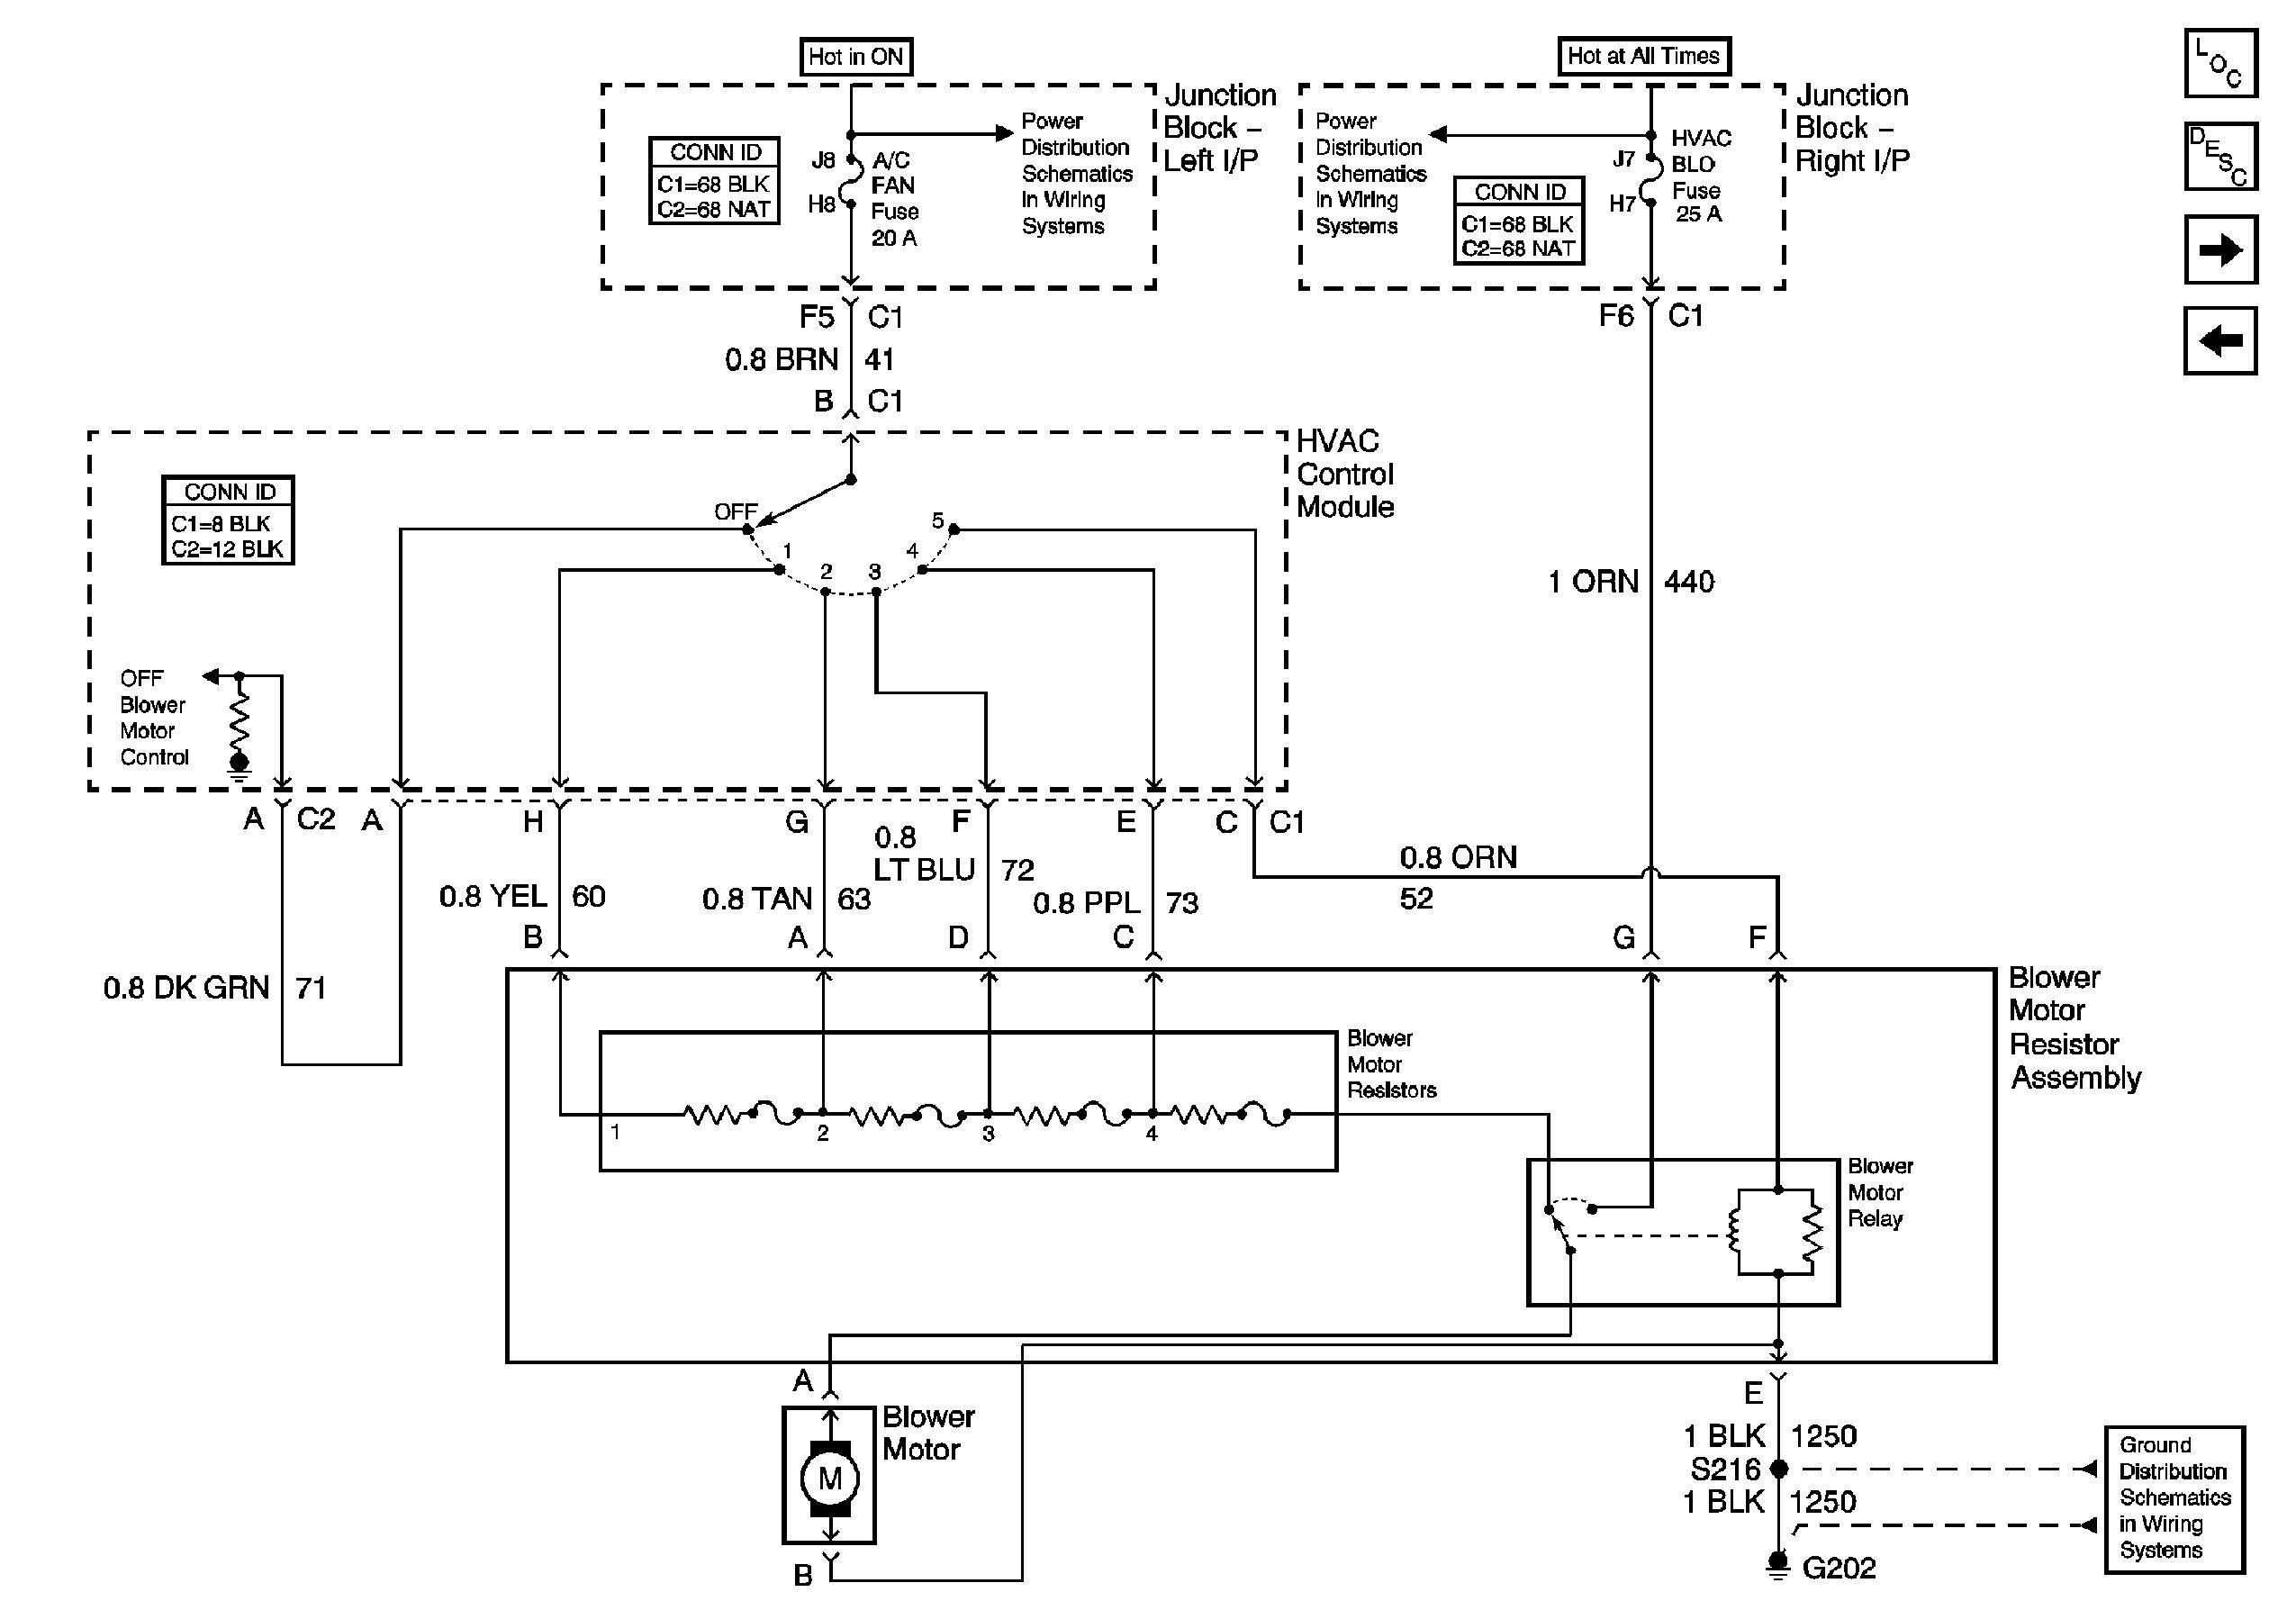 Fasco 9721 Wiring Diagram from static-cdn.imageservice.cloud